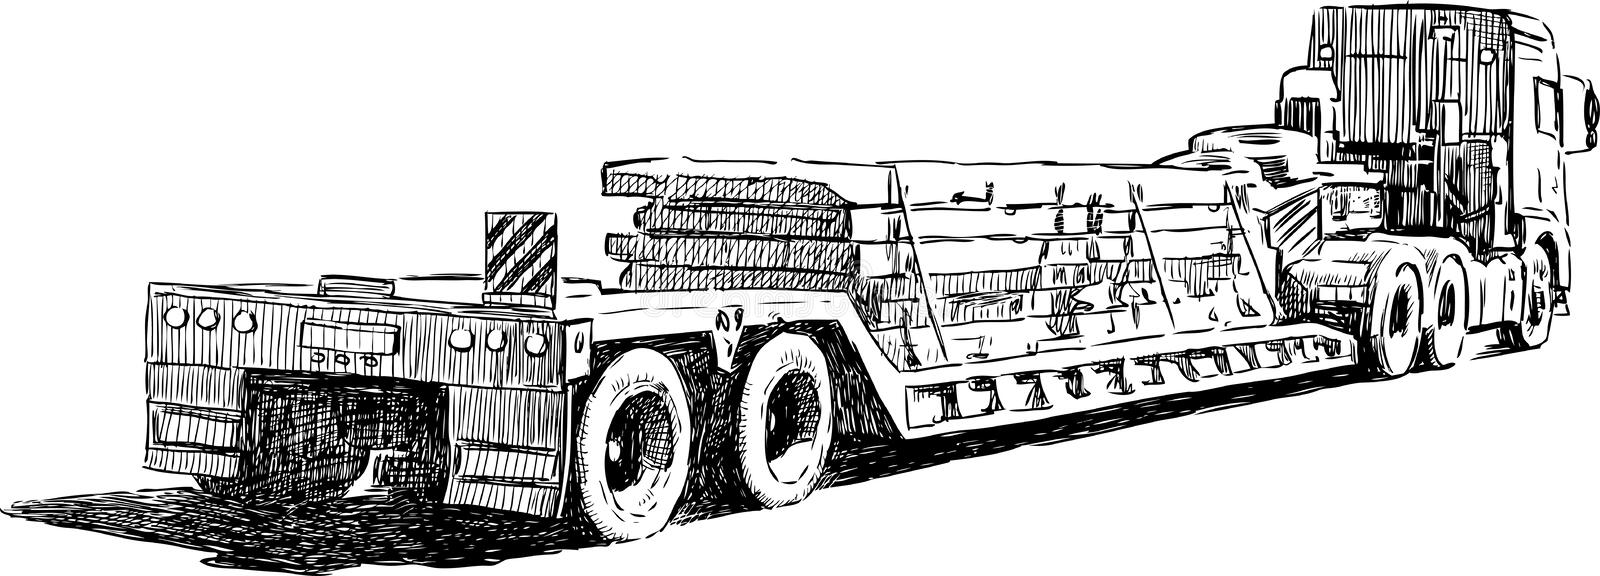 The Sketch Of The Truck Transporting Construction Materials Stock ...